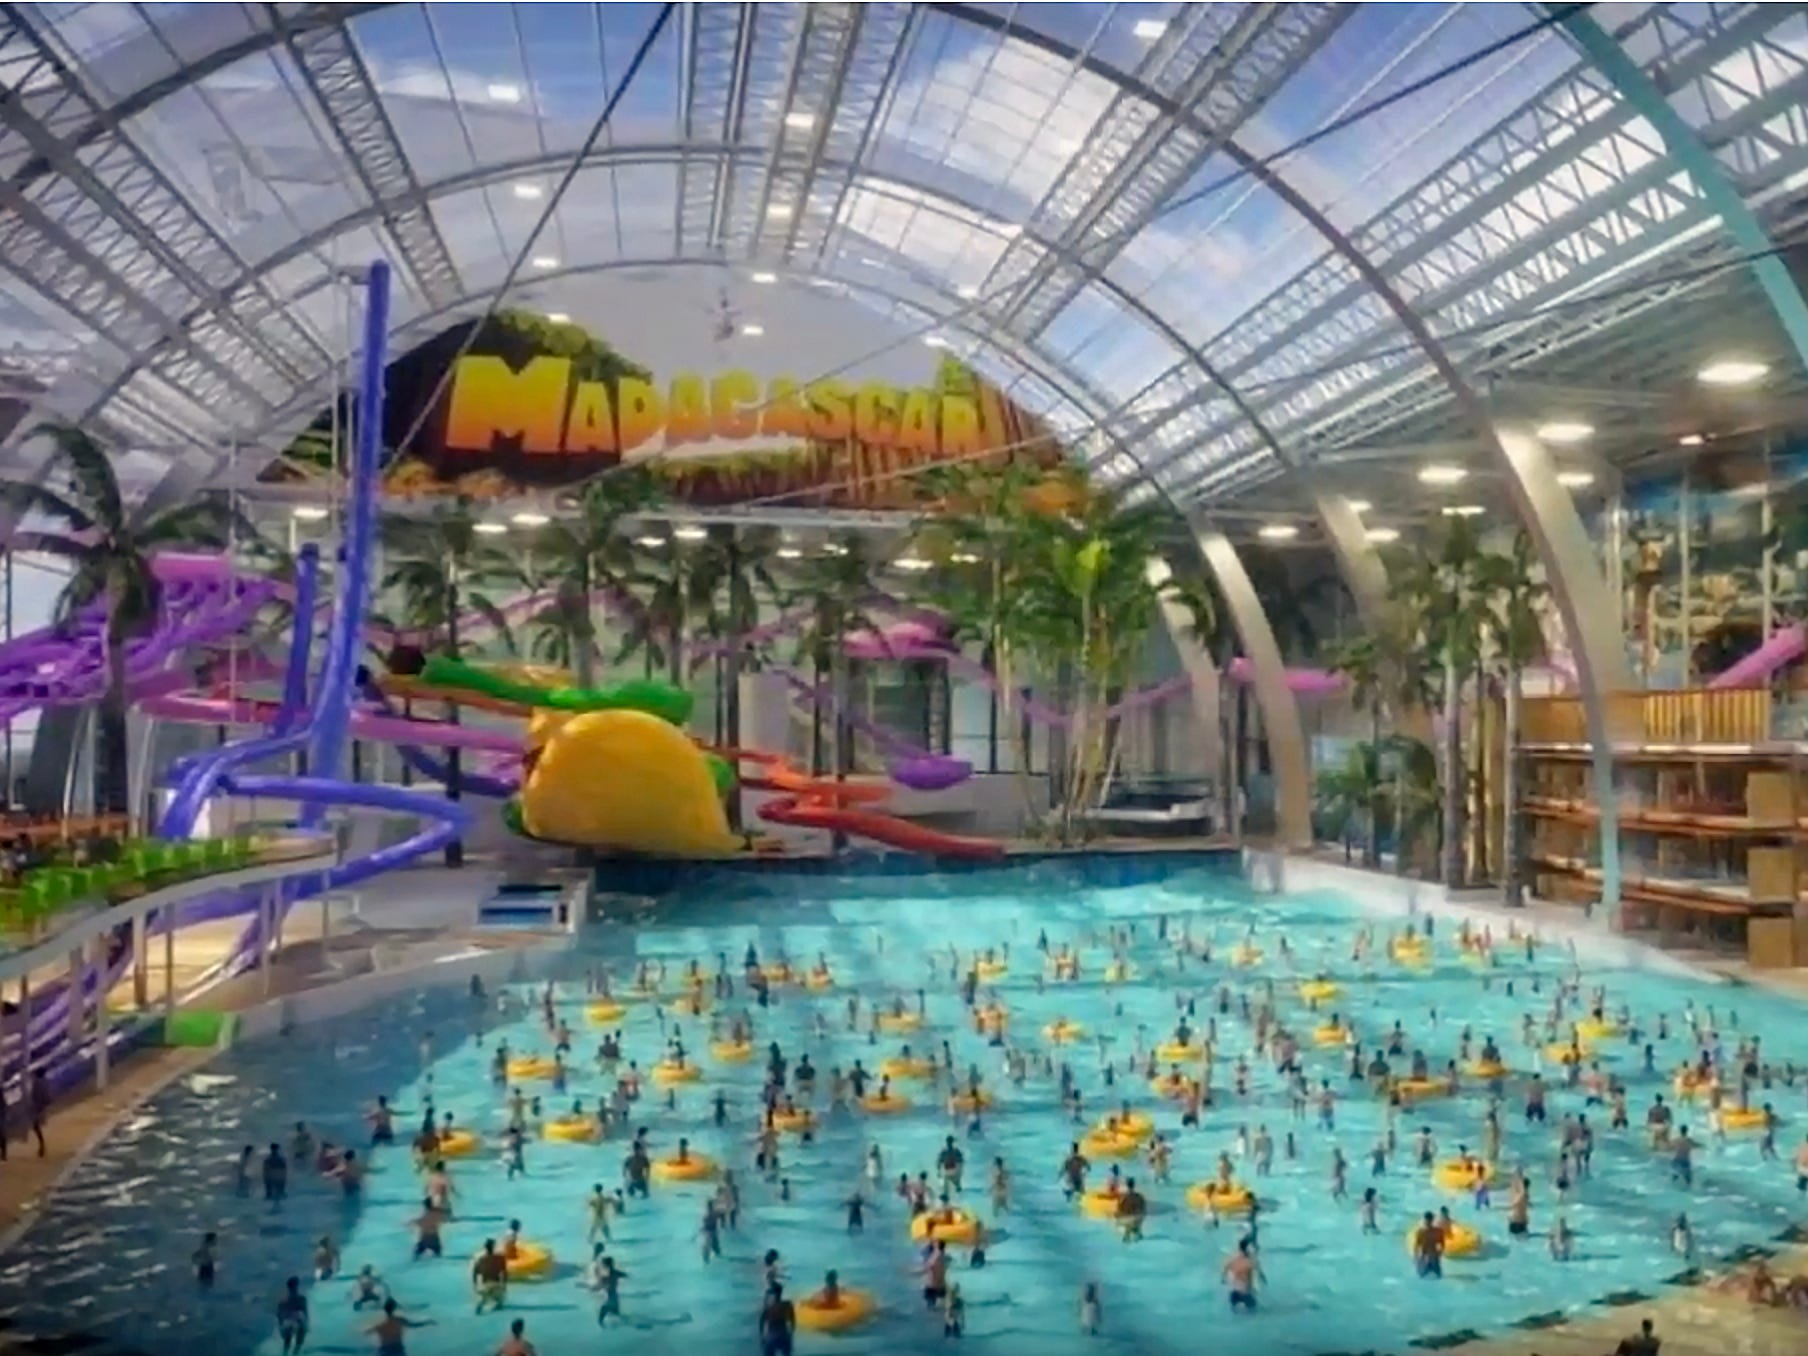 American Dream will also include the indoor, glass-domed, 8-acre Dreamworks Water Park. It will be open year-round and feature an enormous wave pool and other rides themed to the animation studio's movies.